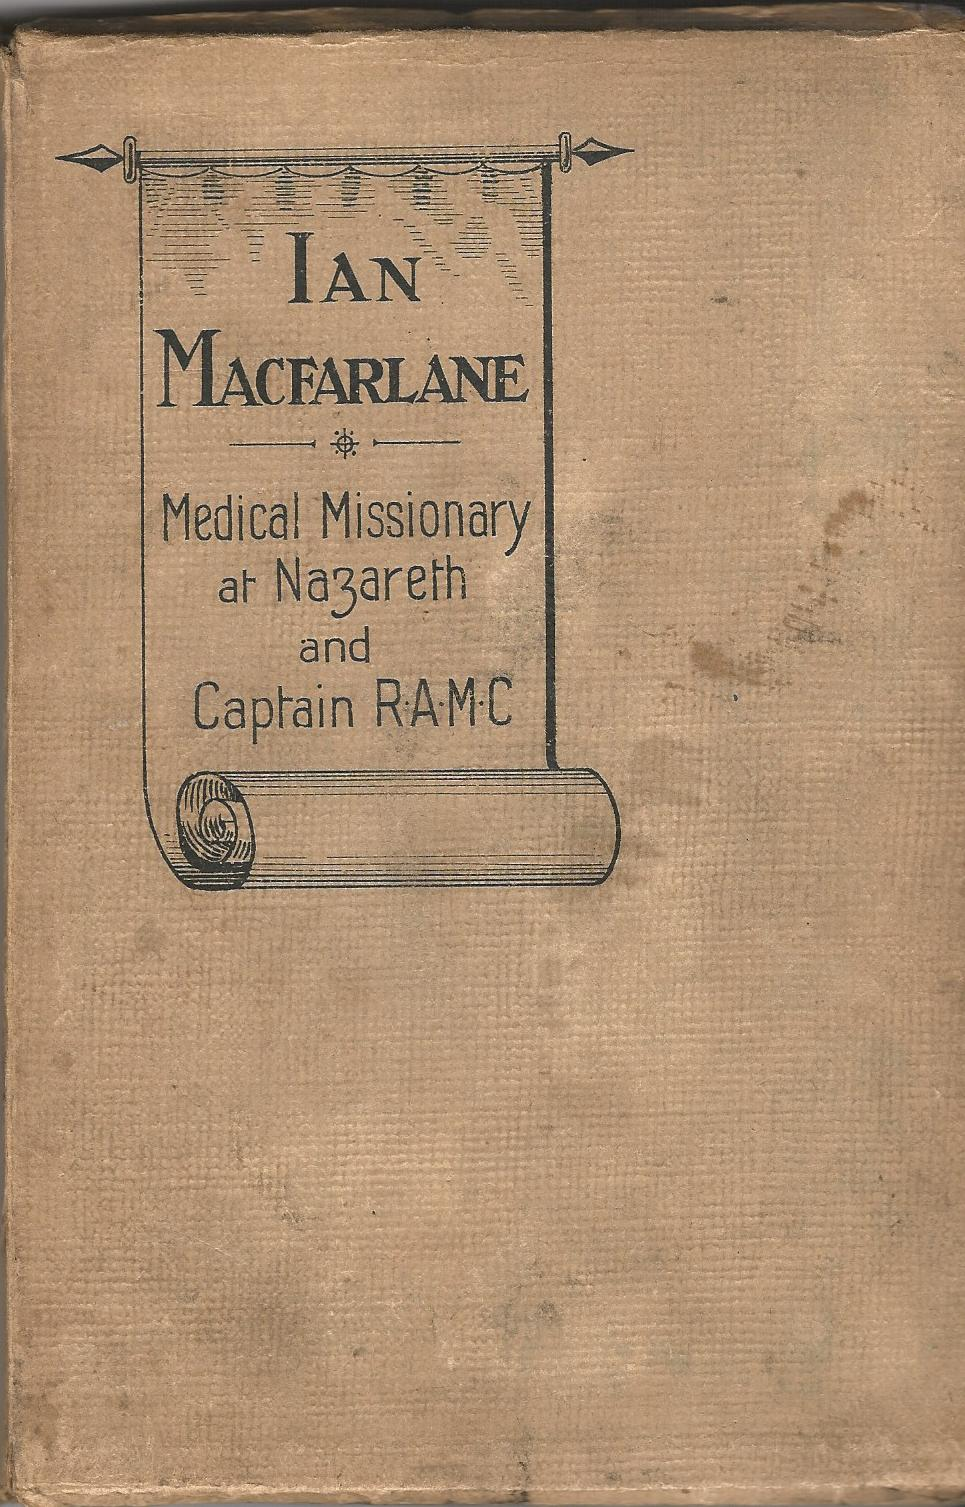 Image for Dr. Ian MacFarlane: Medical Missionary at Nazareth and Captain R.A.M.C.